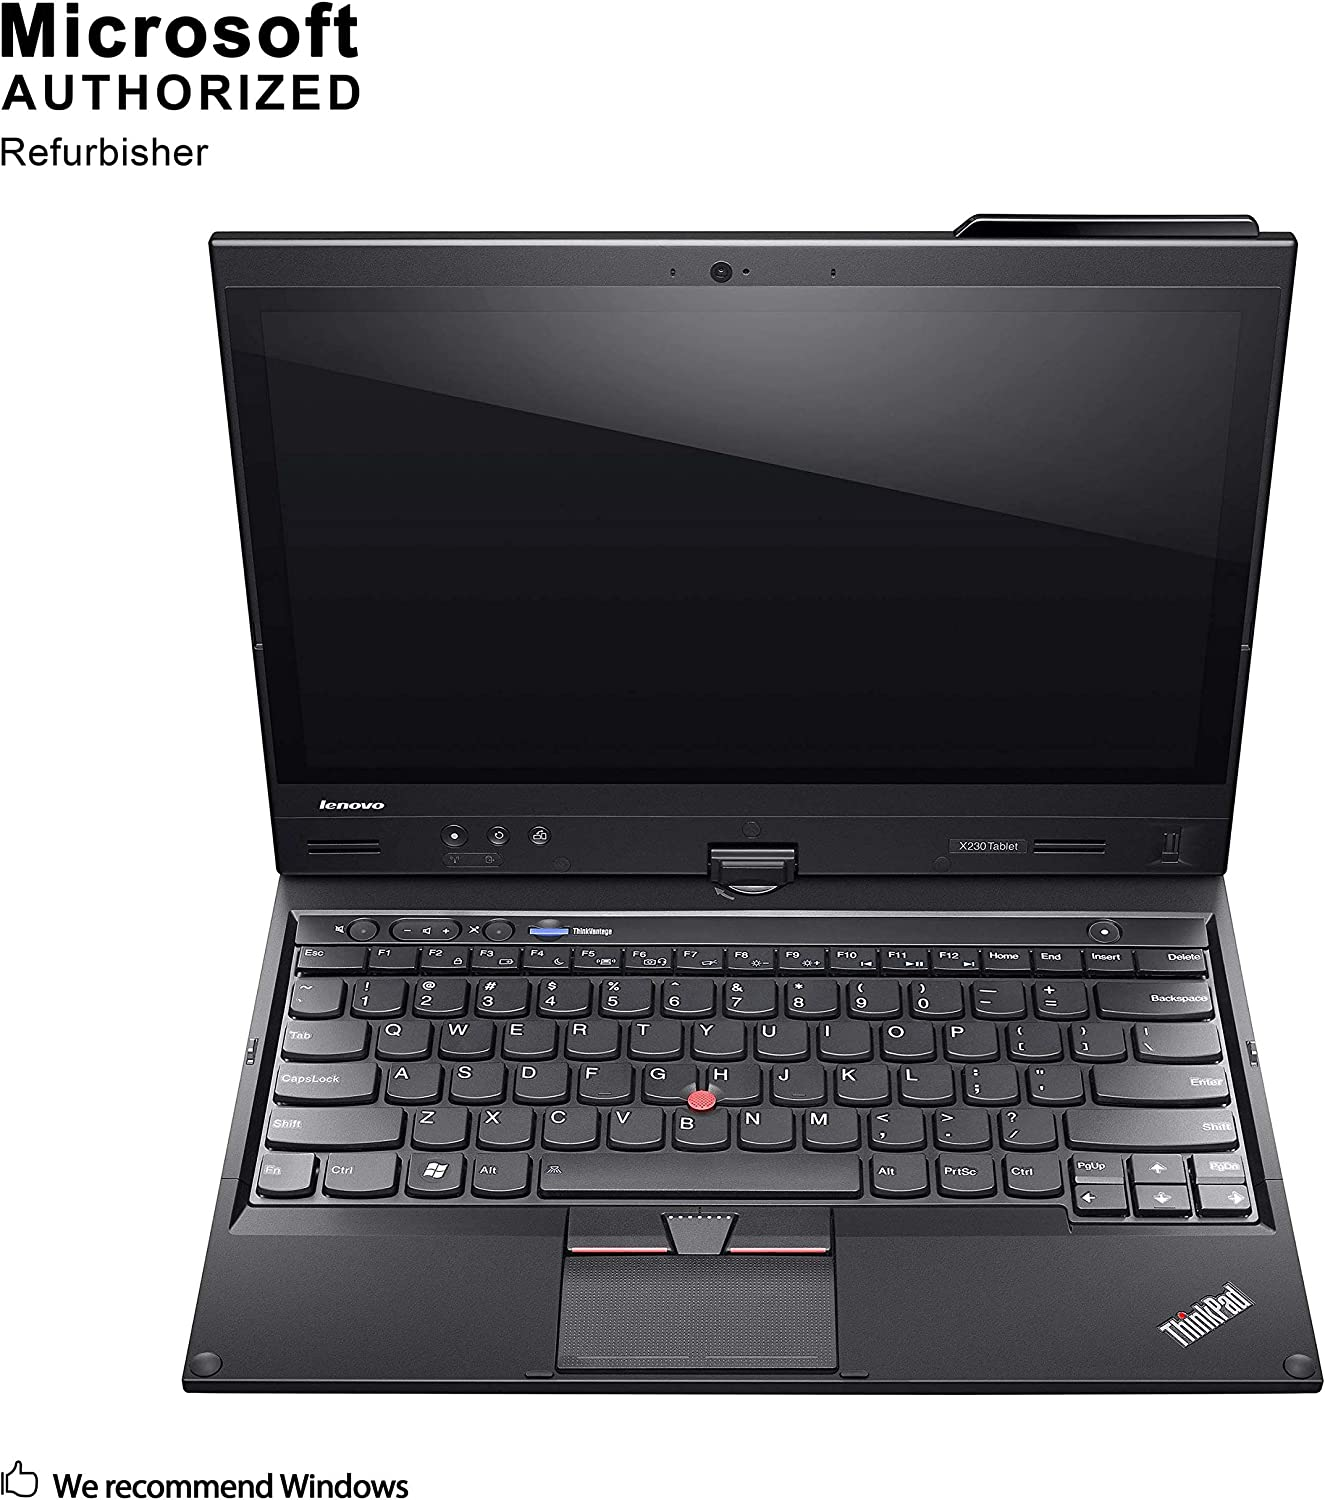 Lenovo ThinkPad X230t 12.5 Inch Convertible Laptop, Intel Core i5 3320M up to 3.3GHz, 8G DDR3, 128G SSD, WiFi, VGA, mDP, Windows 10 64 Bit Multi-Language Supports English/French/Spanish(Renewed)